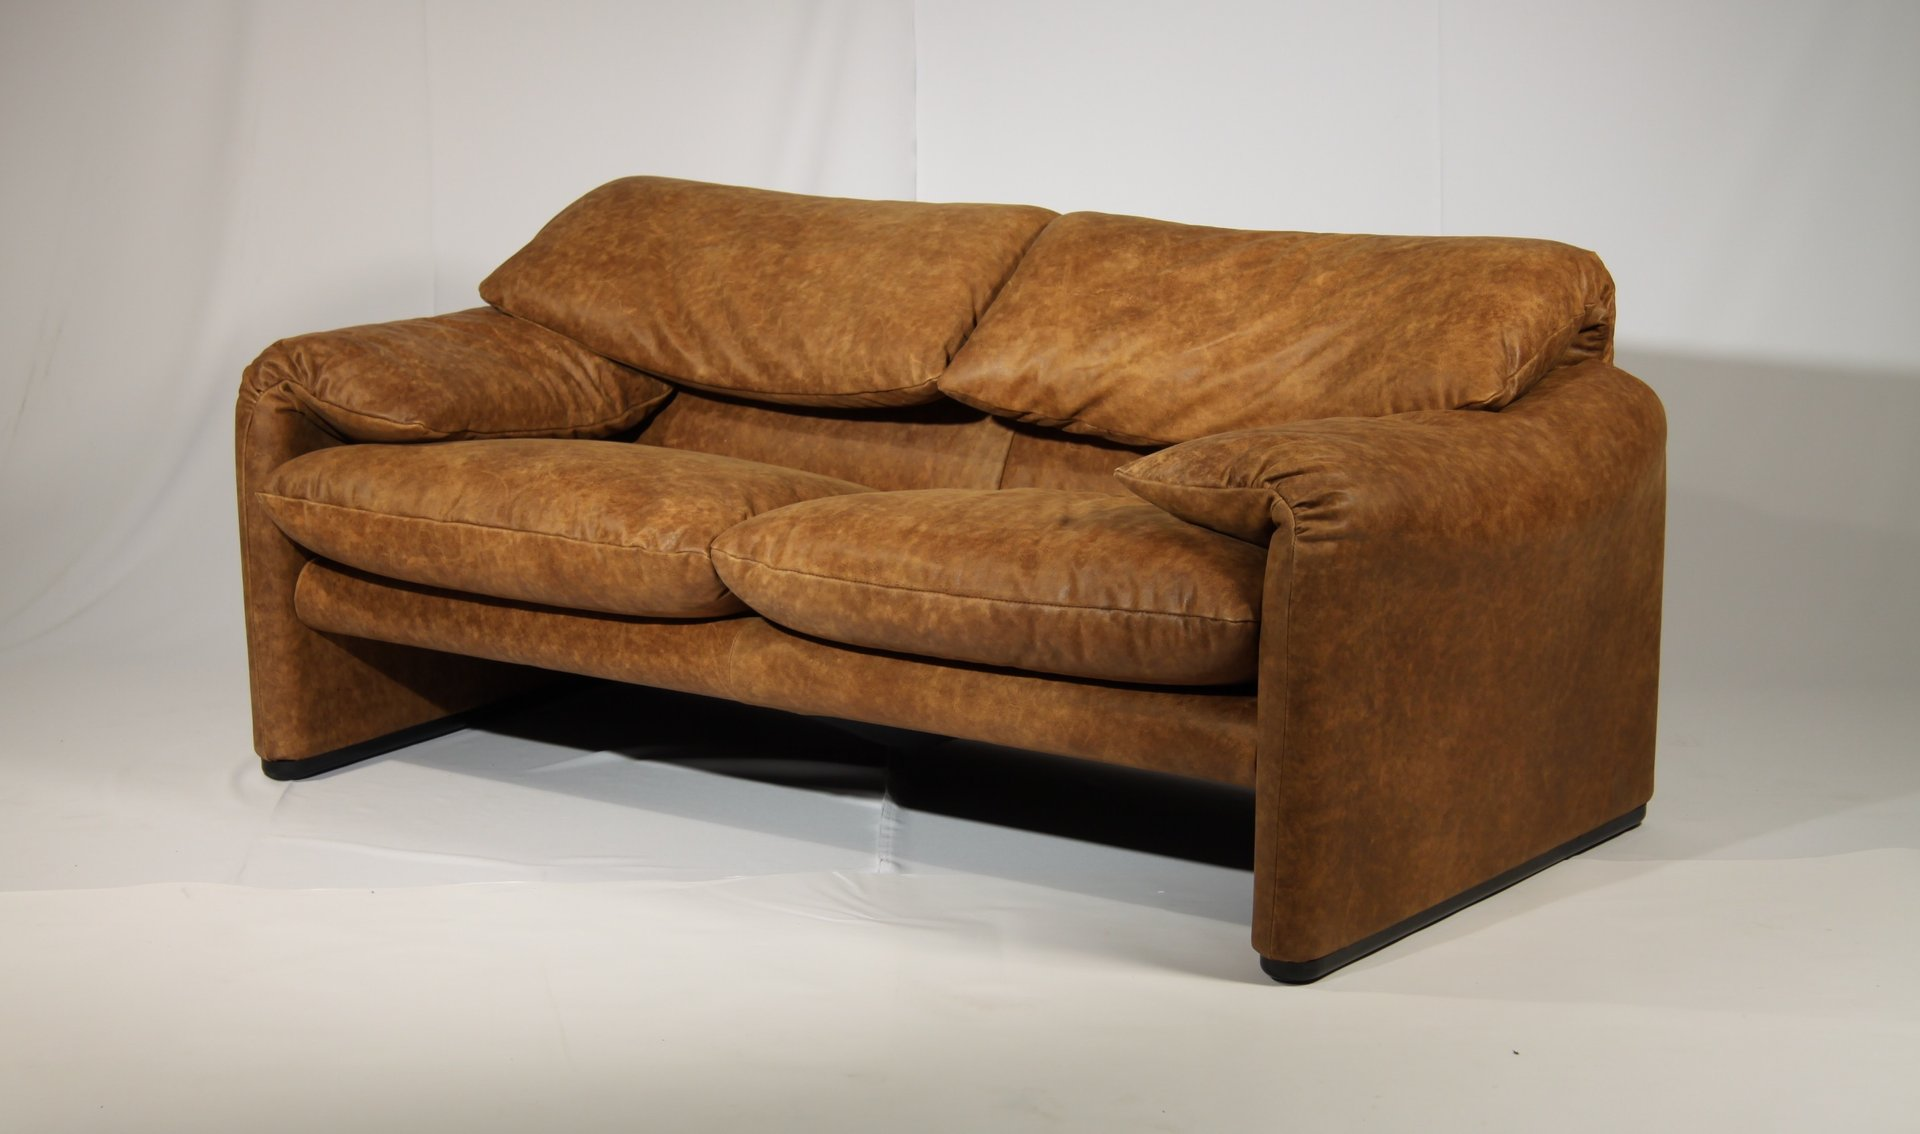 vintage maralunga sofa by vico magistretti for cassina 1973 for sale at pamono. Black Bedroom Furniture Sets. Home Design Ideas